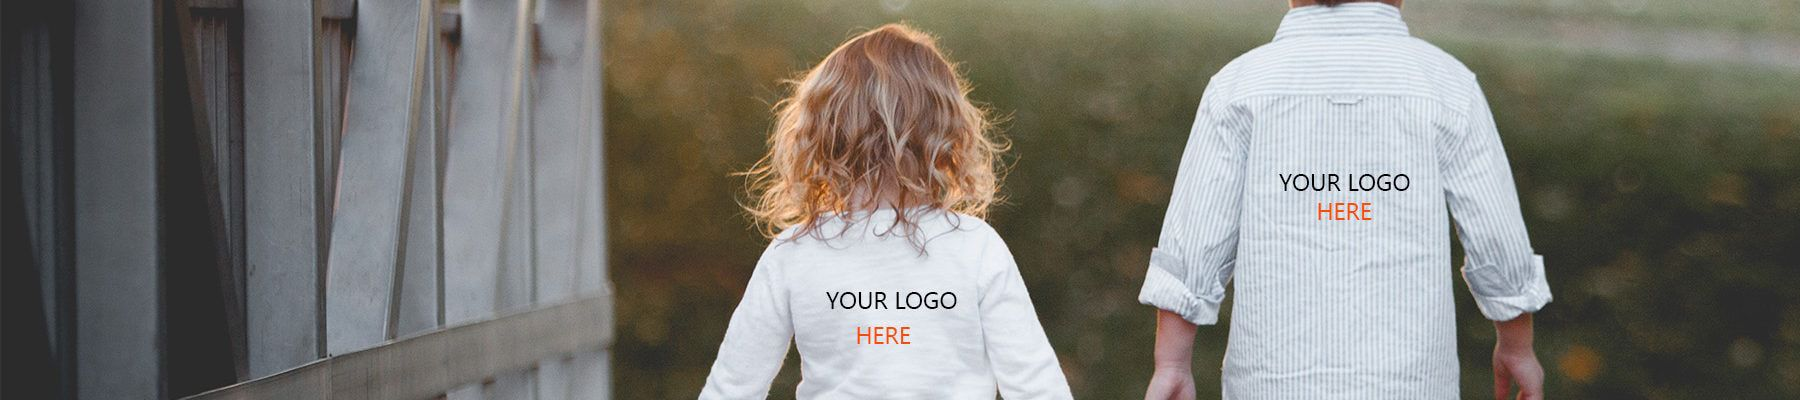 Personalised kids clothing - Header Image